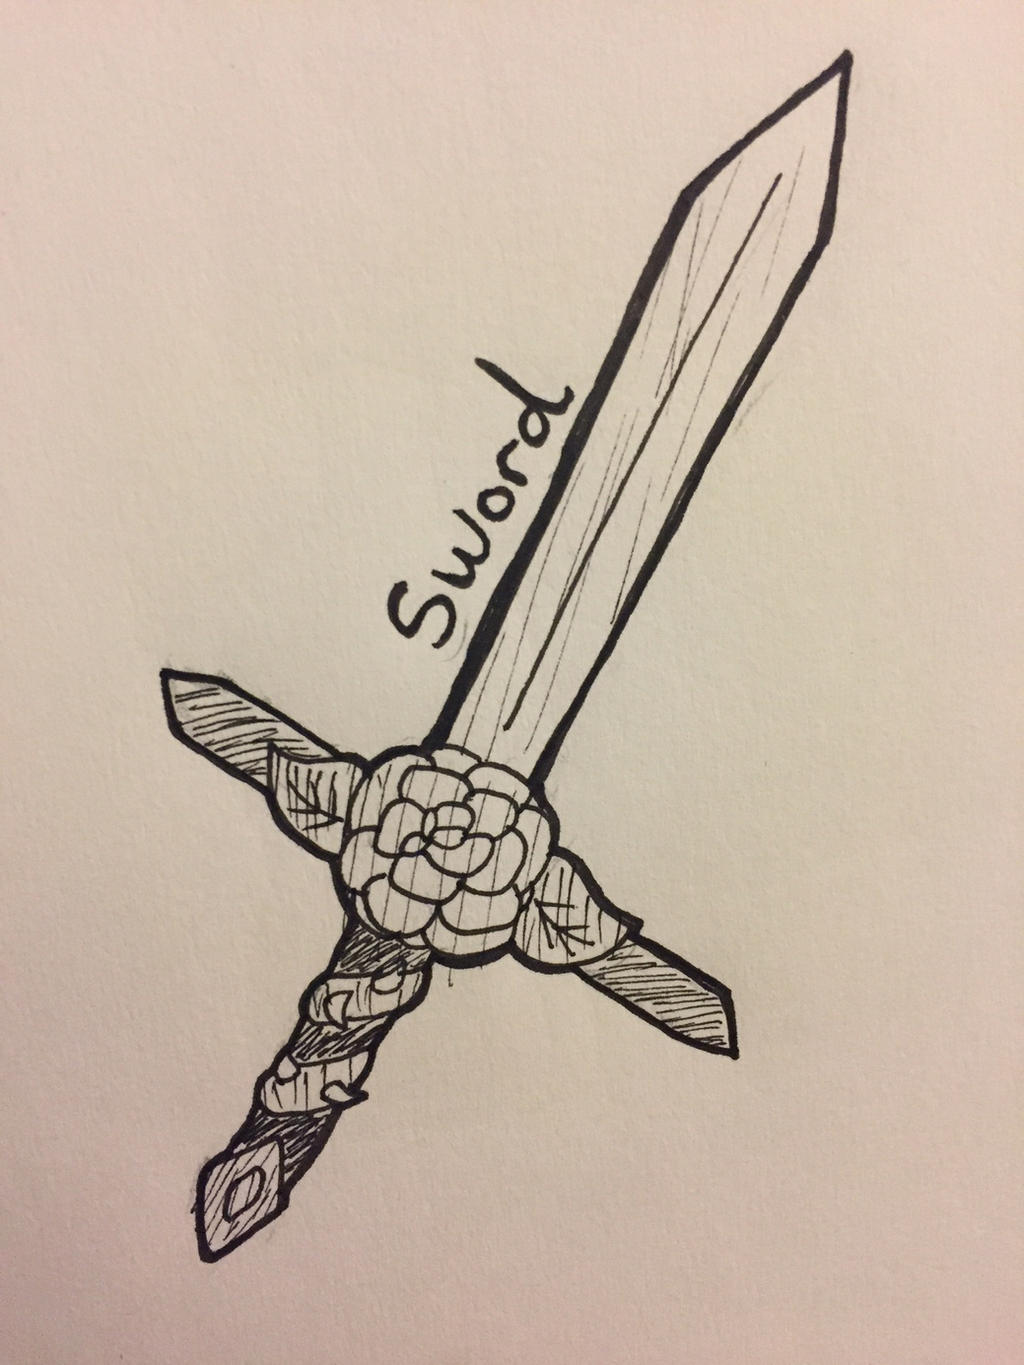 Inktober Day 6: Sword by Panolli